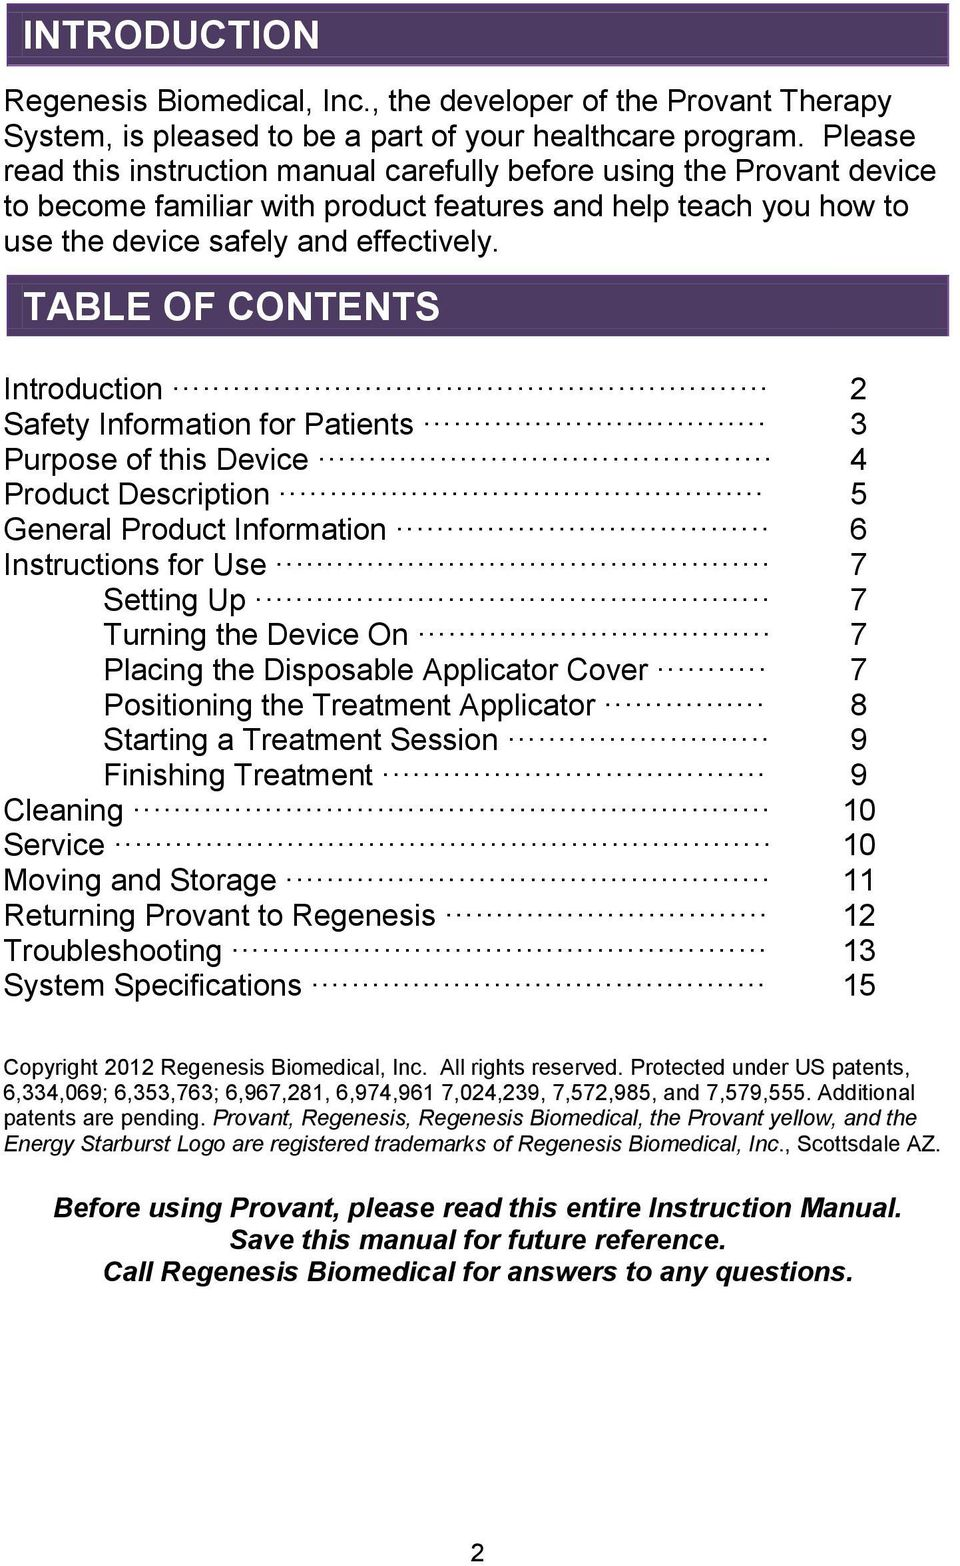 TABLE OF CONTENTS Introduction 2 Safety Information for Patients 3 Purpose of this Device 4 Product Description 5 General Product Information 6 Instructions for Use 7 Setting Up 7 Turning the Device